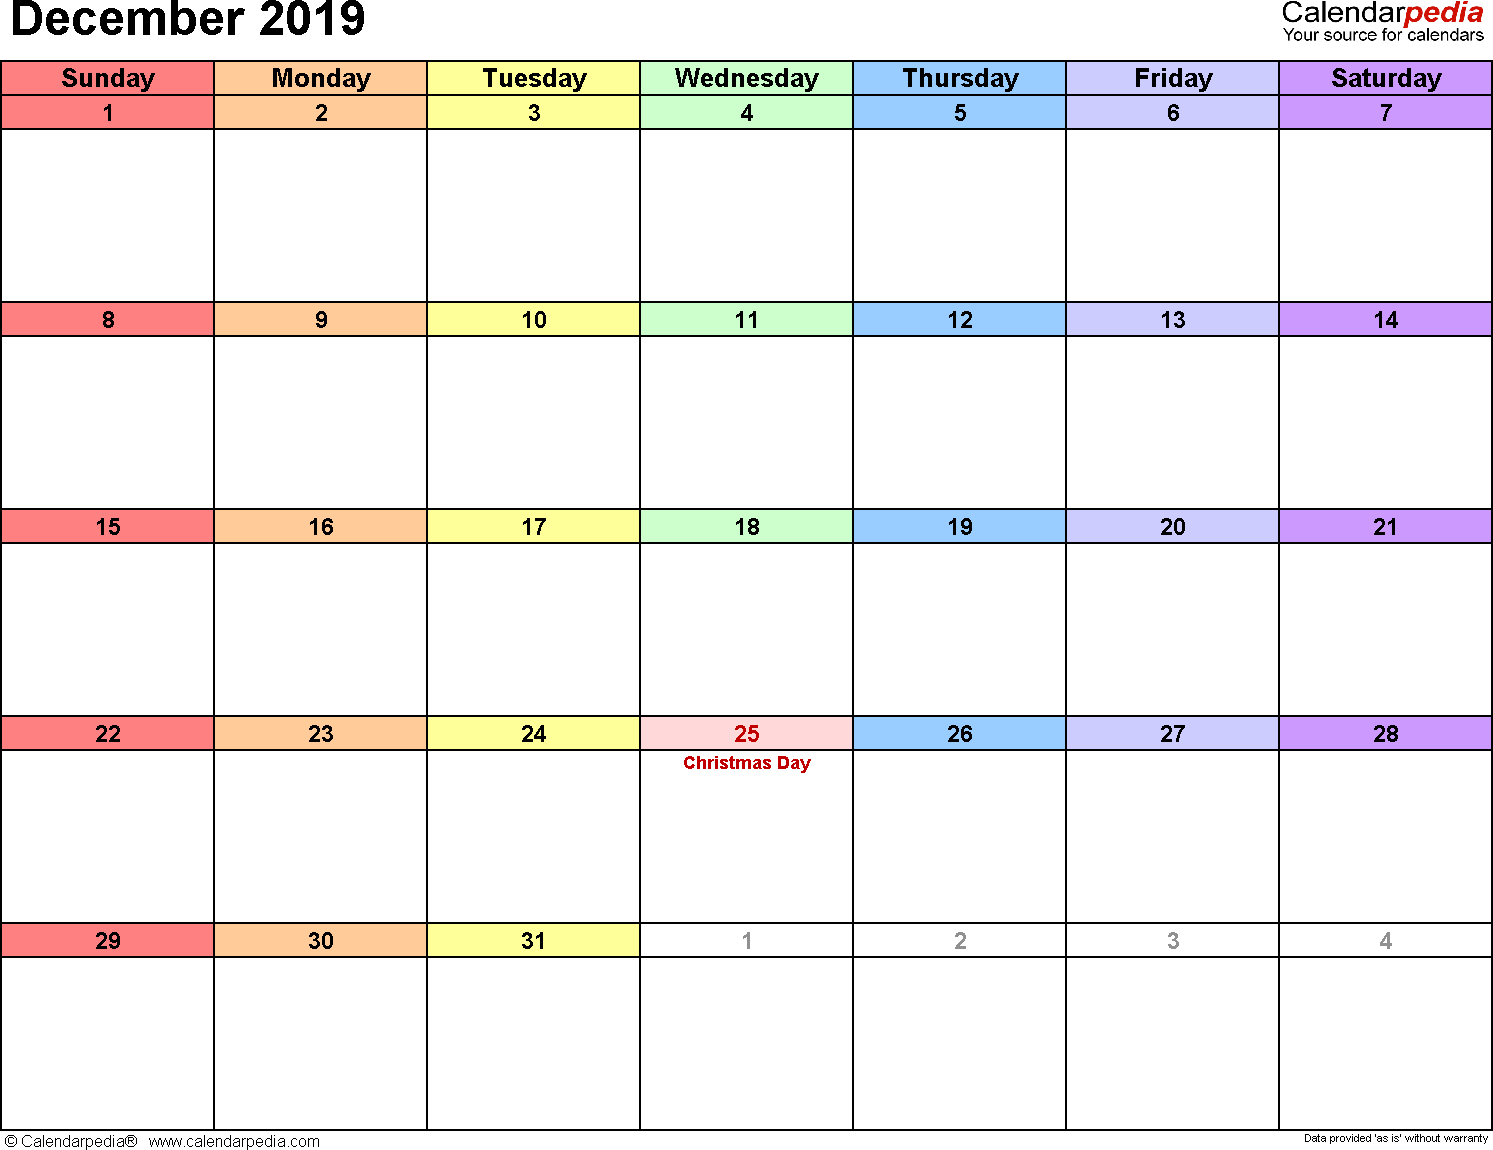 Calendar December 2019 Image December 2019 Calendars for Word, Excel & PDF